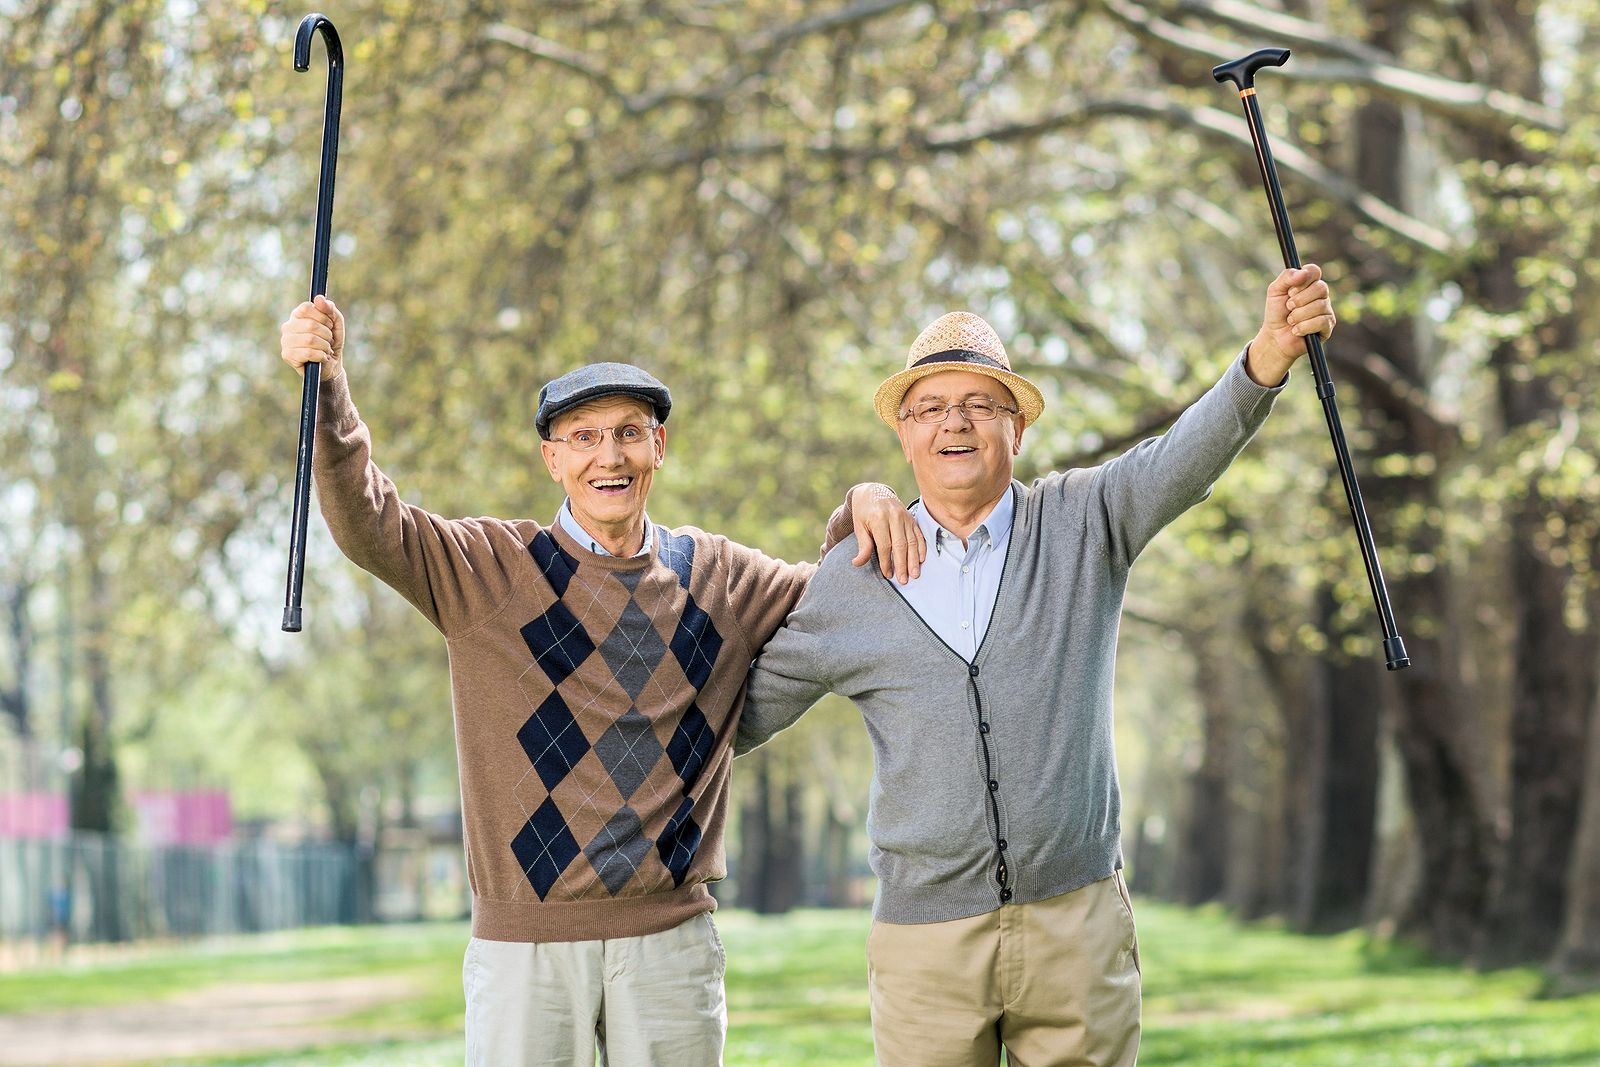 Two elderly gentlemen with canes gesturing happiness outdoors